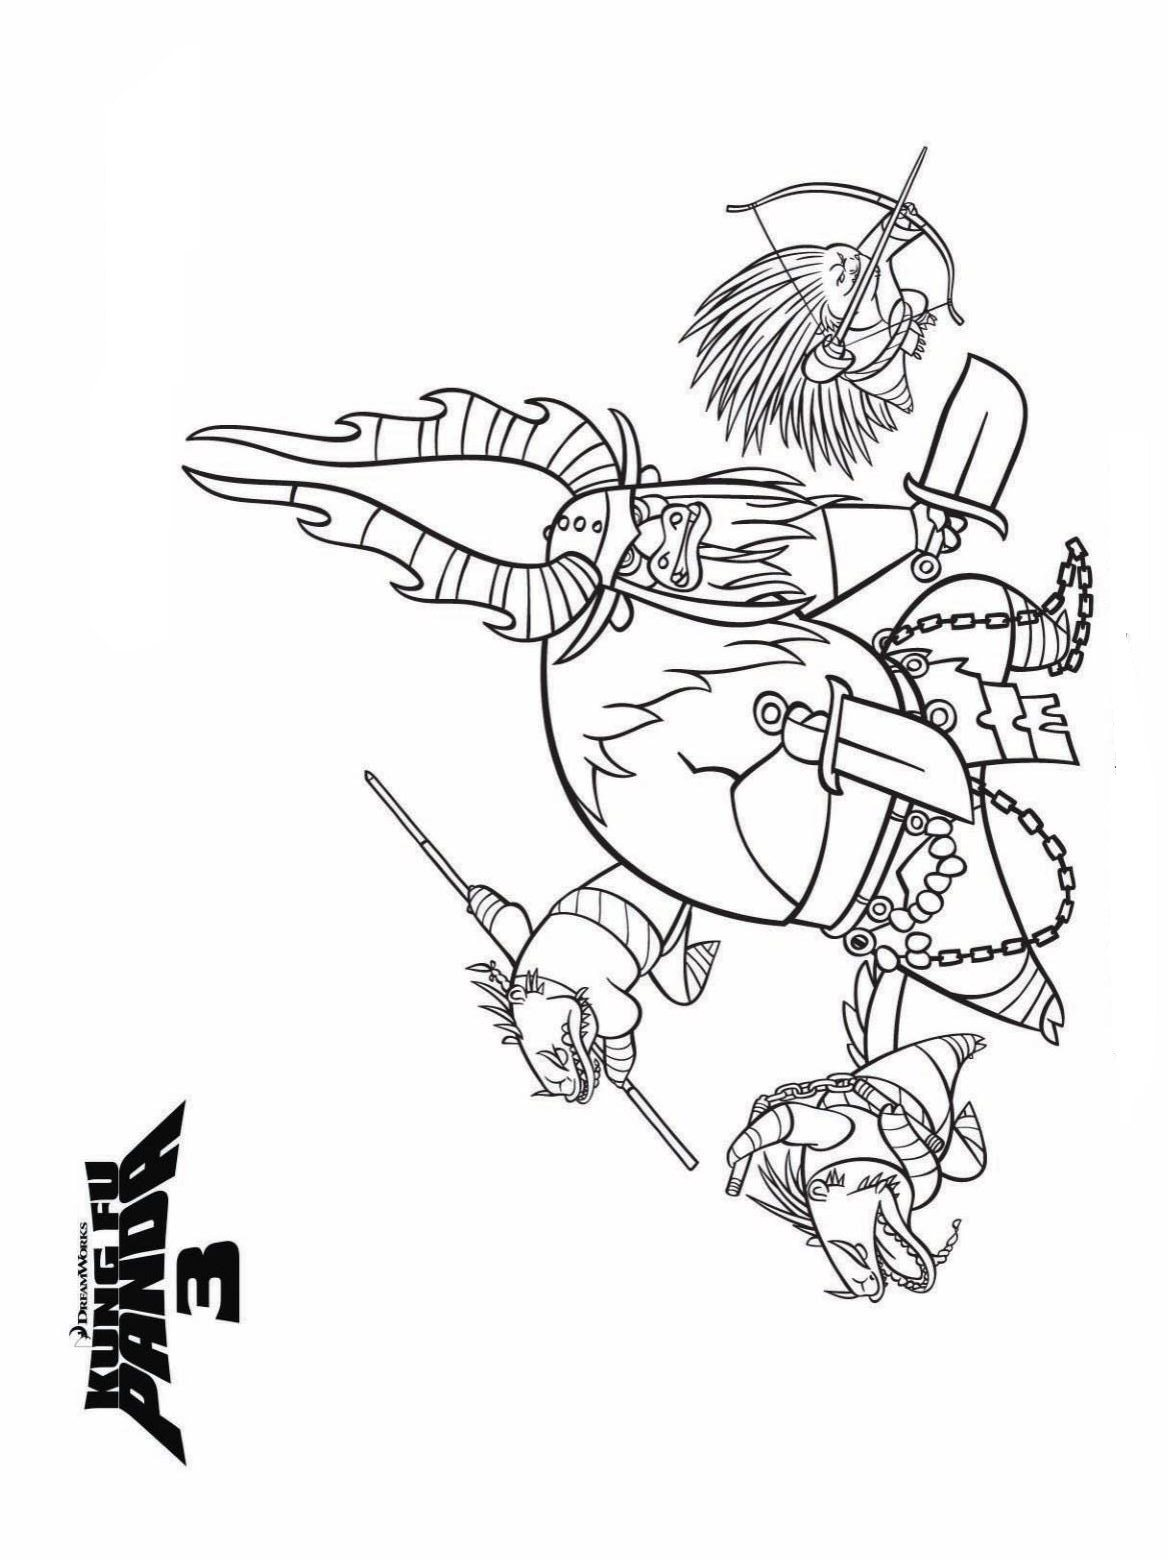 number 3 coloring pages. Kung Fu Panda 3  7 coloring pages Kids n fun com All about Animated films